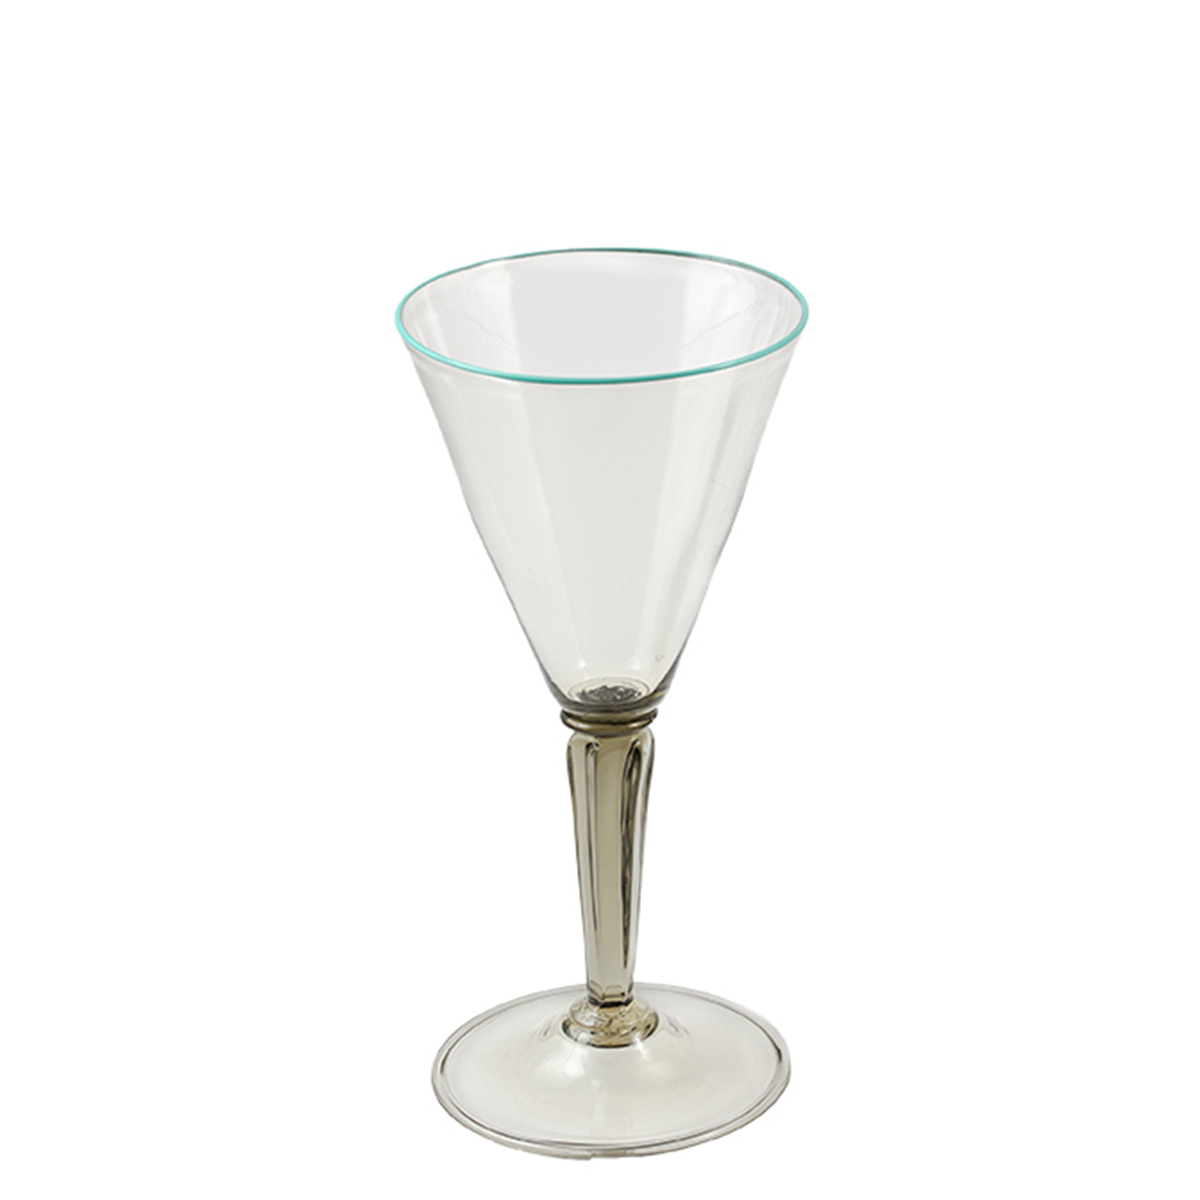 tulipano_glass_murano_handmade_venice_giberto_cocktail_water_blue_rim_luxury